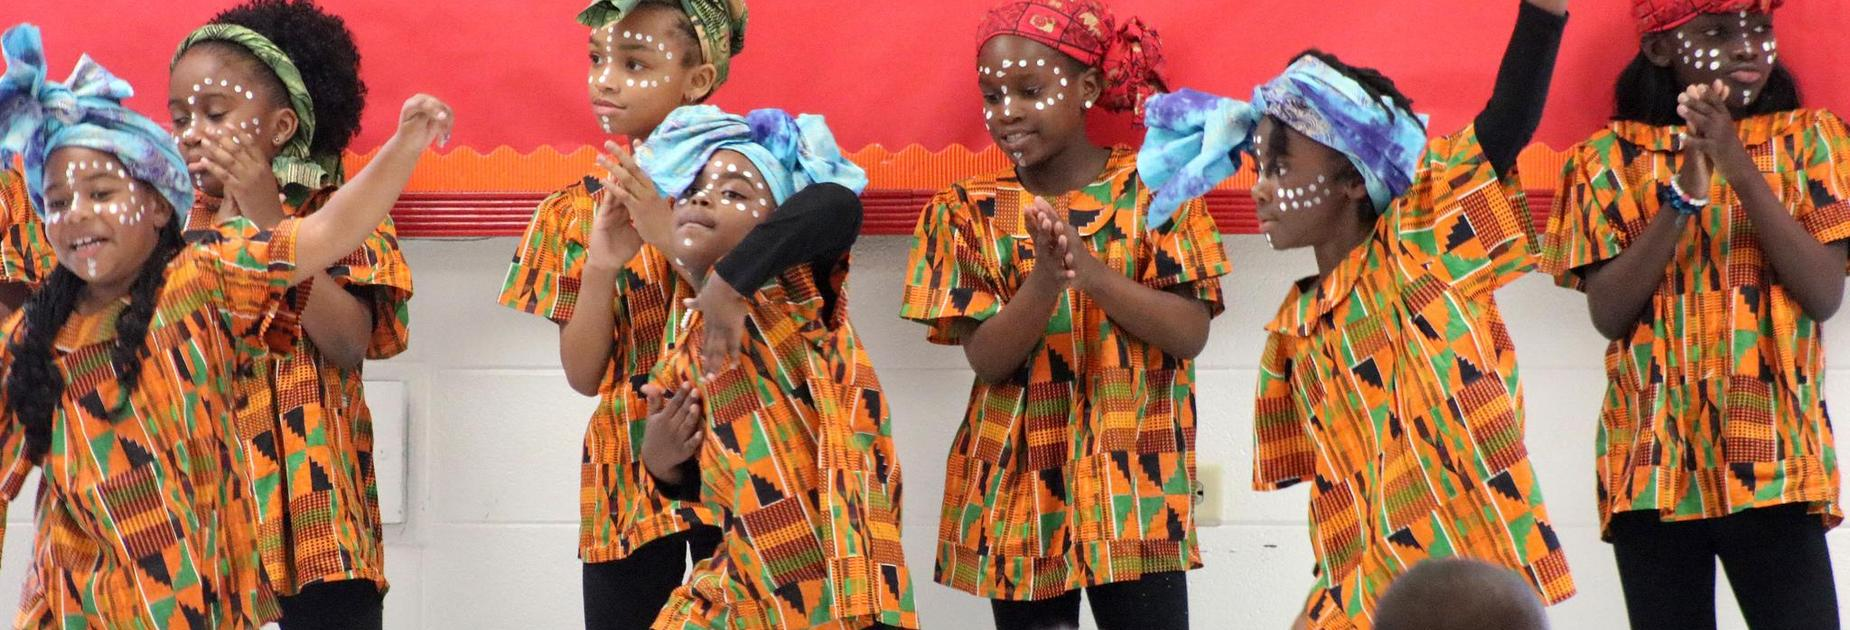 KBP students dance at Black History Month celebration